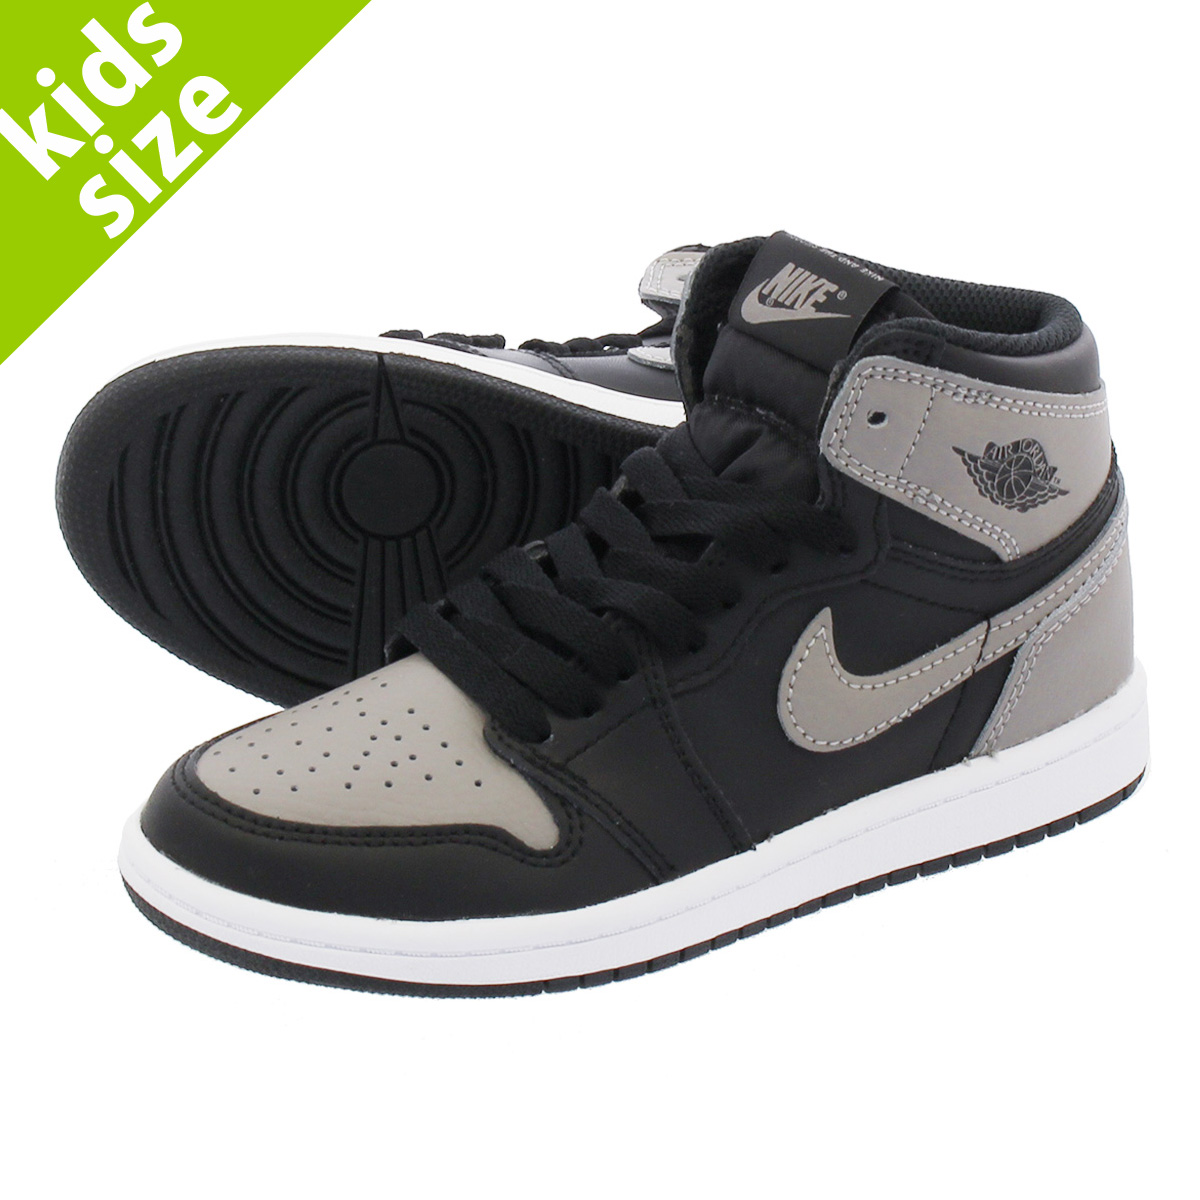 【キッズサイズ】【16-22cm】 NIKE AIR JORDAN 1 RETRO HIGH OG BP 【SHADOW】 ナイキ エア ジョーダン 1 レトロ ハイ OG BP BLACK/MEDIUM GREY/WHITE aq2664-013